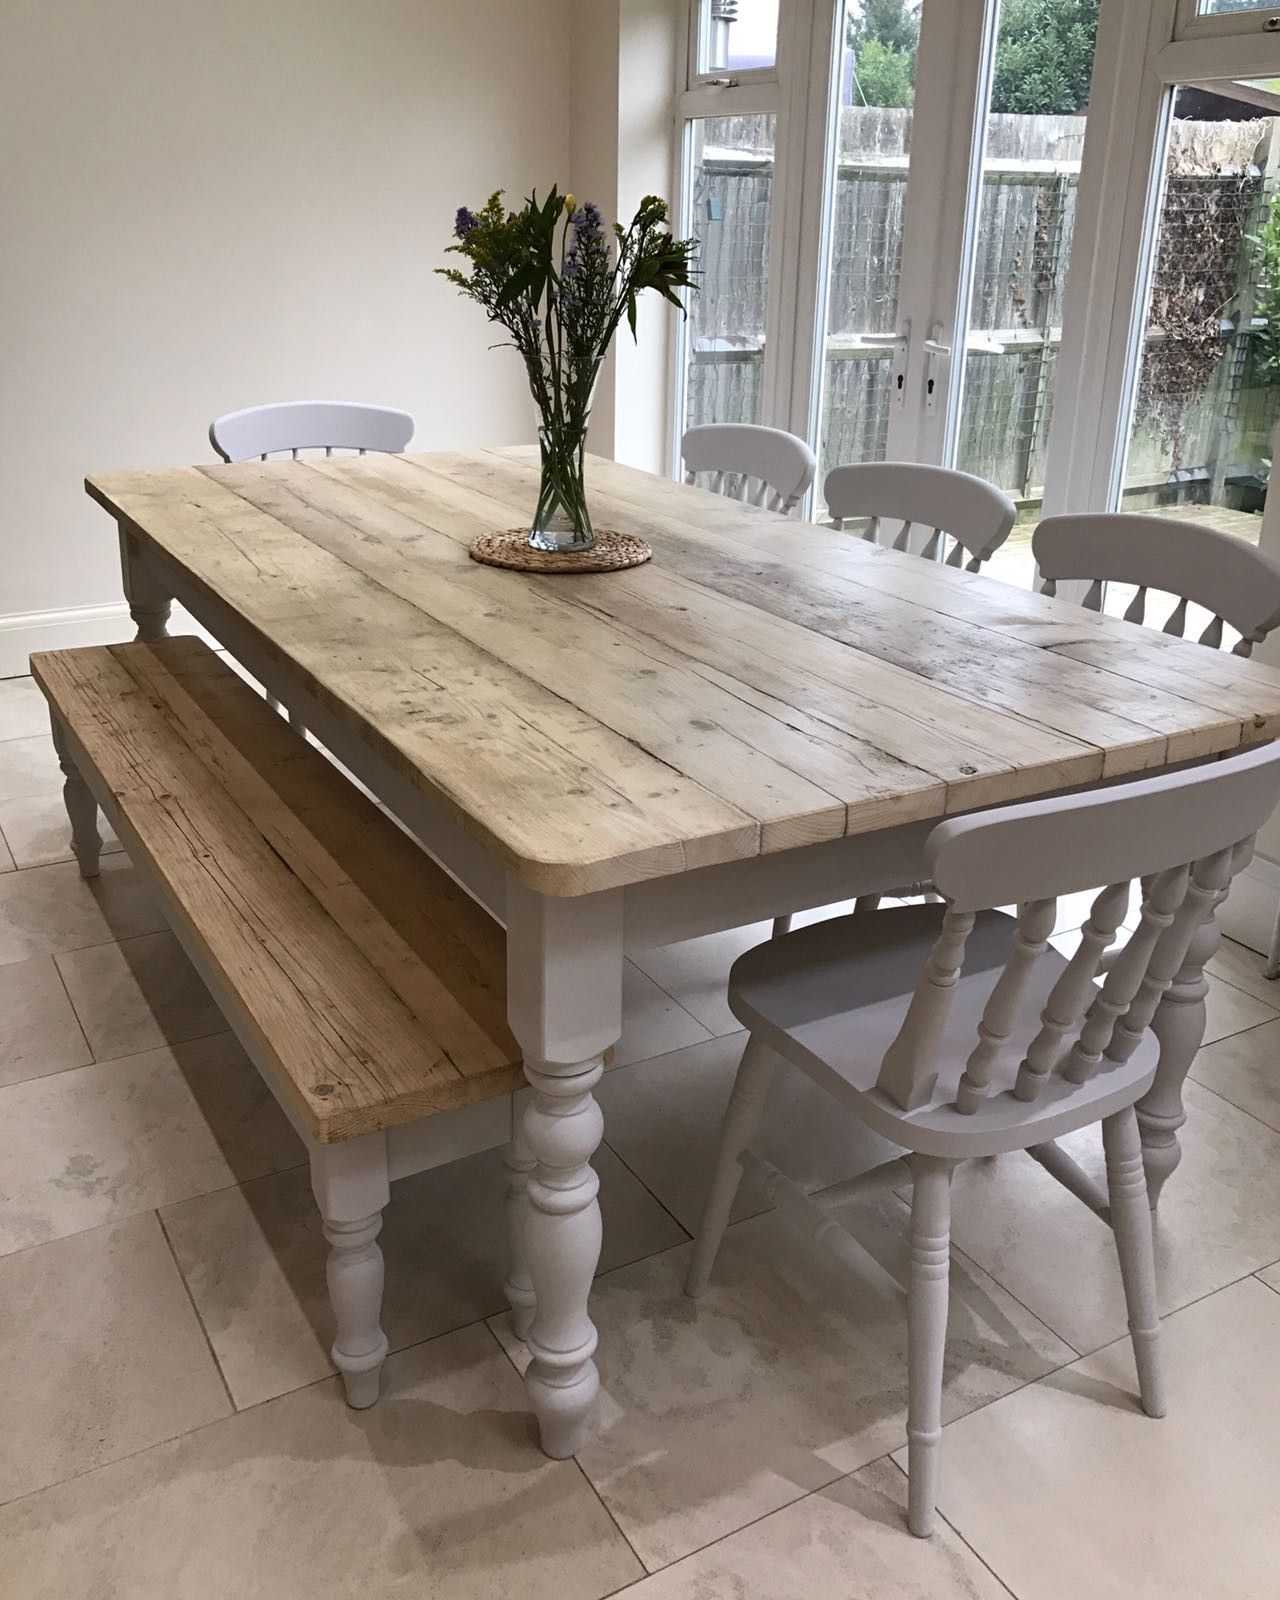 The Florence Clear' Table Made From Reclaimed Wood Distressed Impressive Quality Dining Room Tables Decorating Inspiration